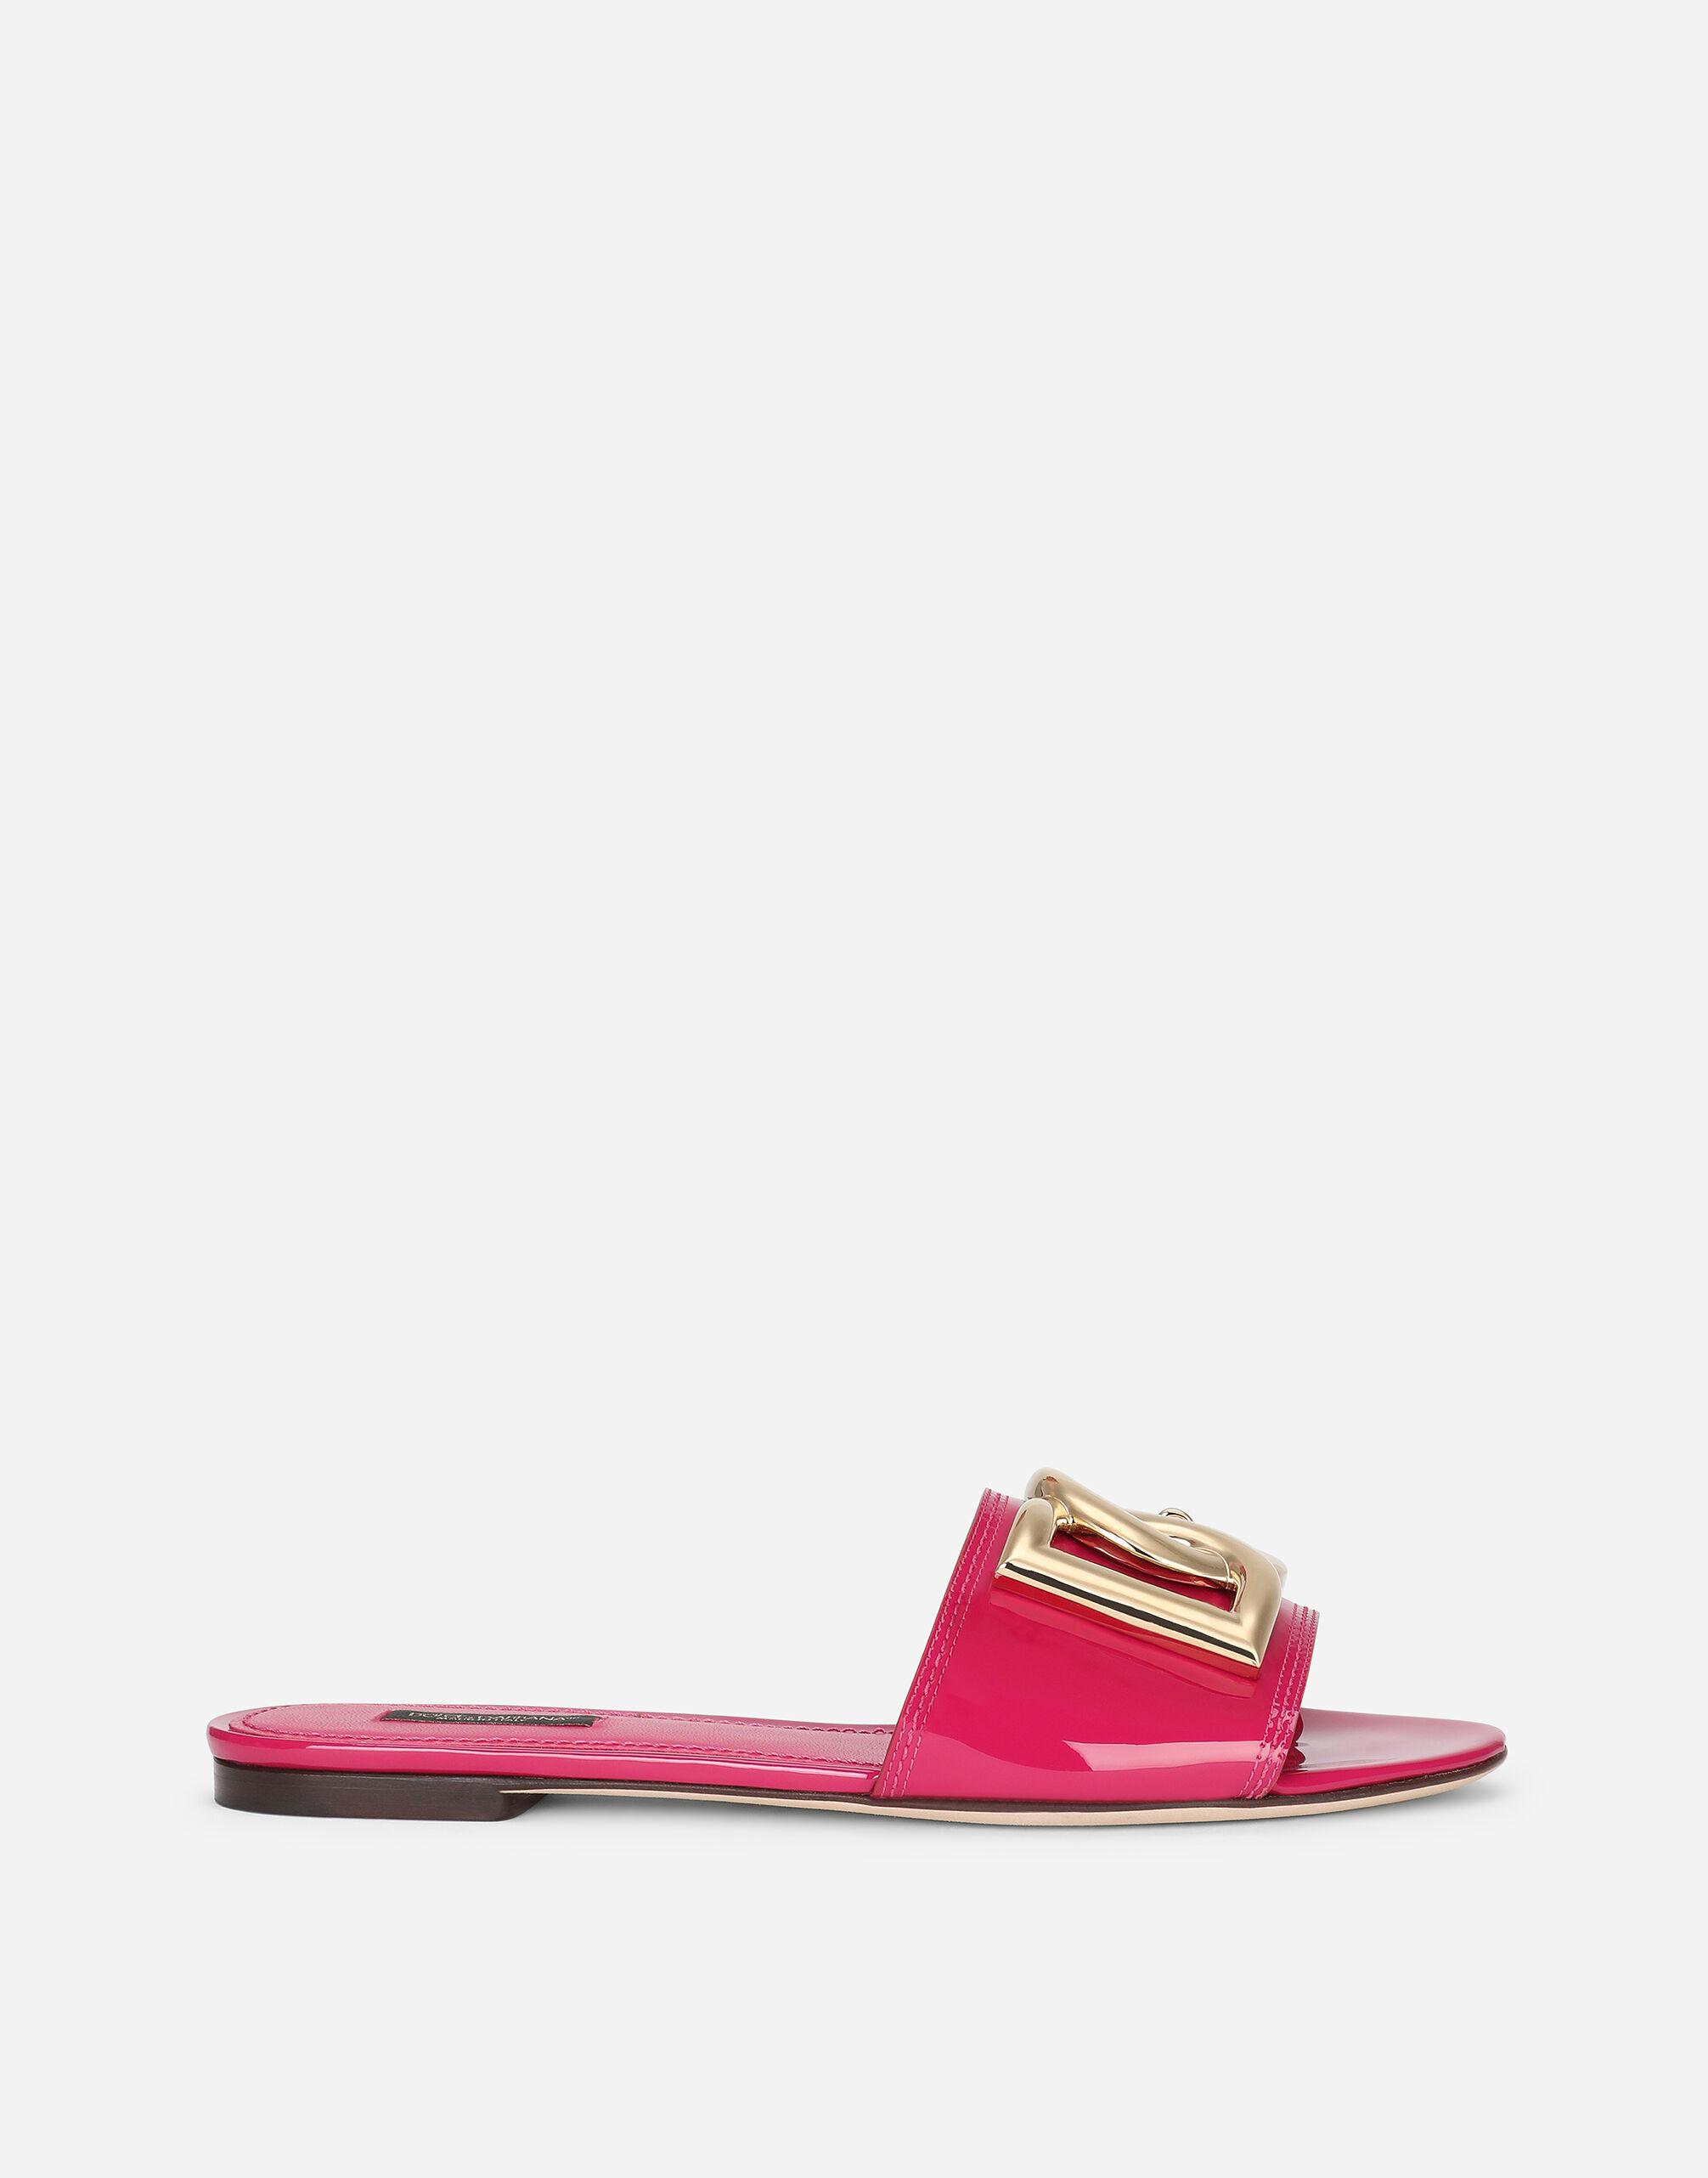 Patent leather sliders with DG logo